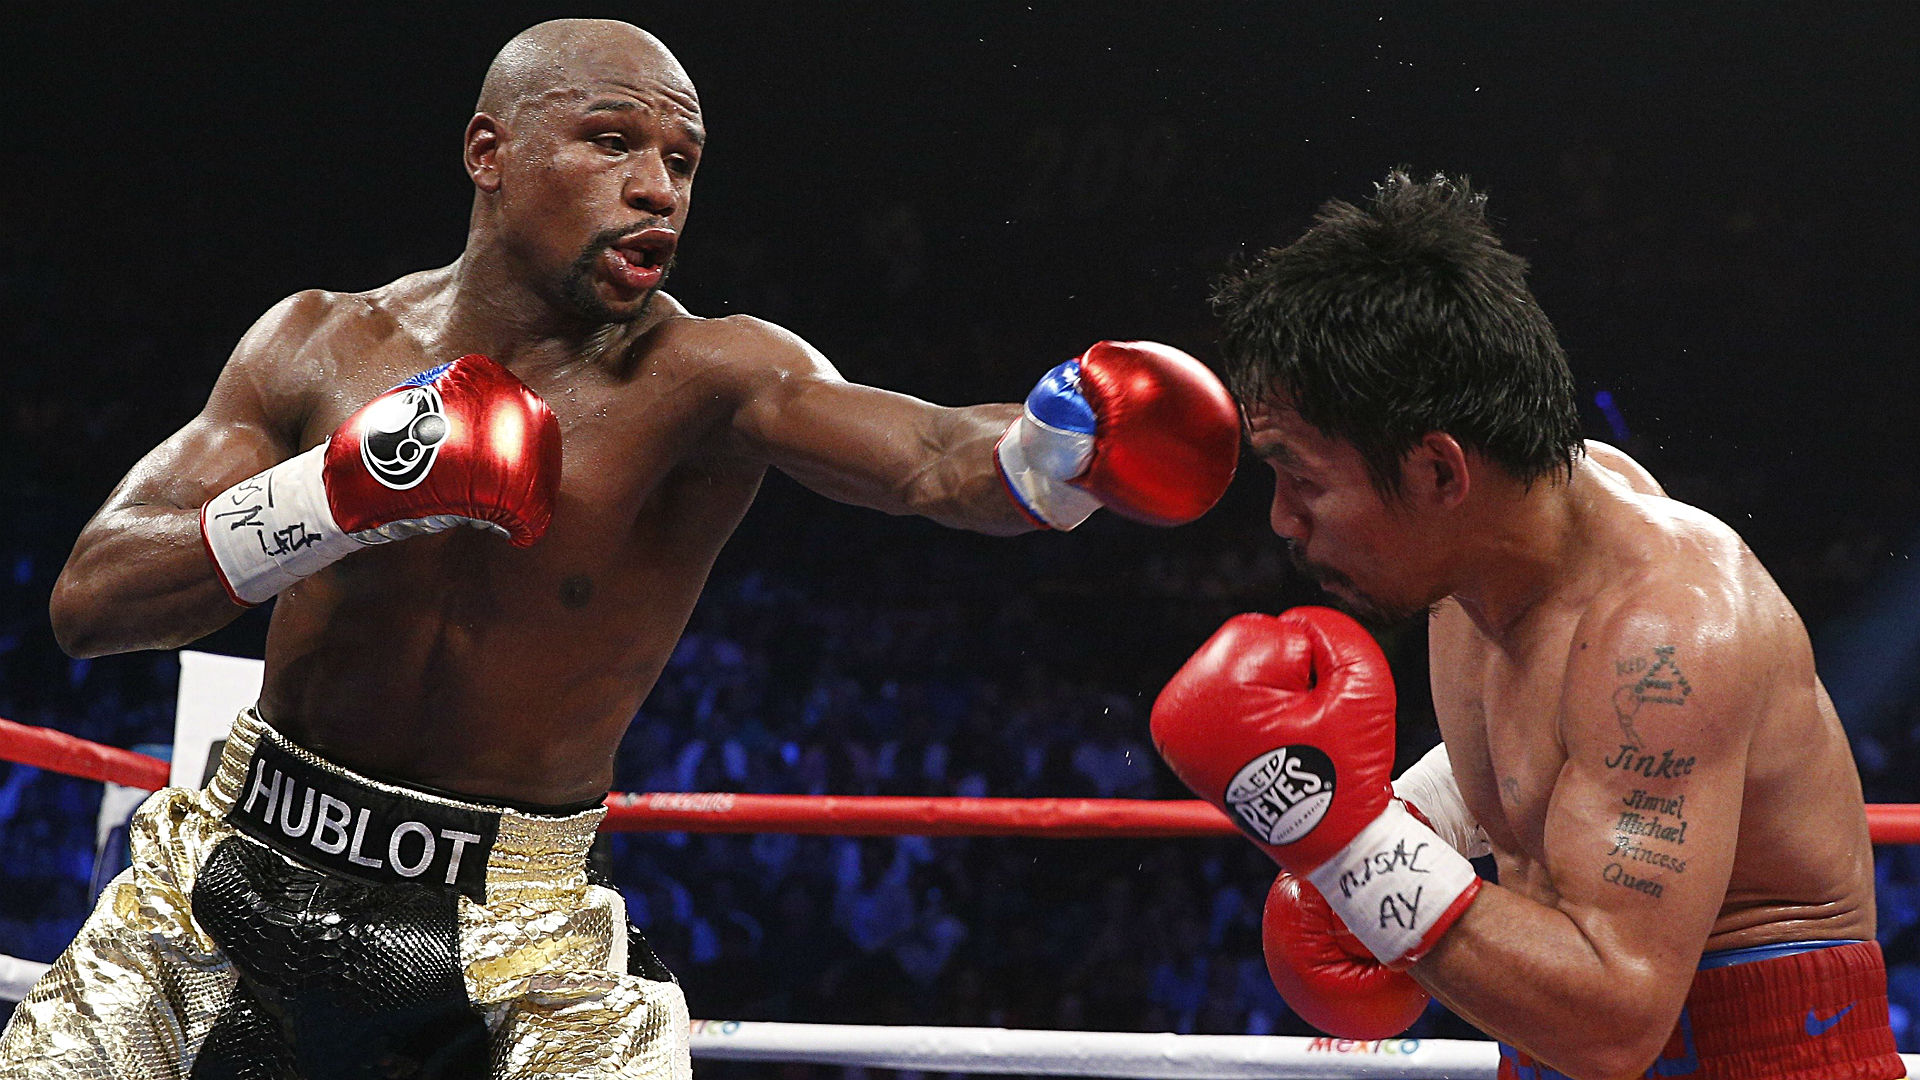 Mayweather vs. Pacquiao betting report: MGM books win over $1 million on lighter-than-expected handle